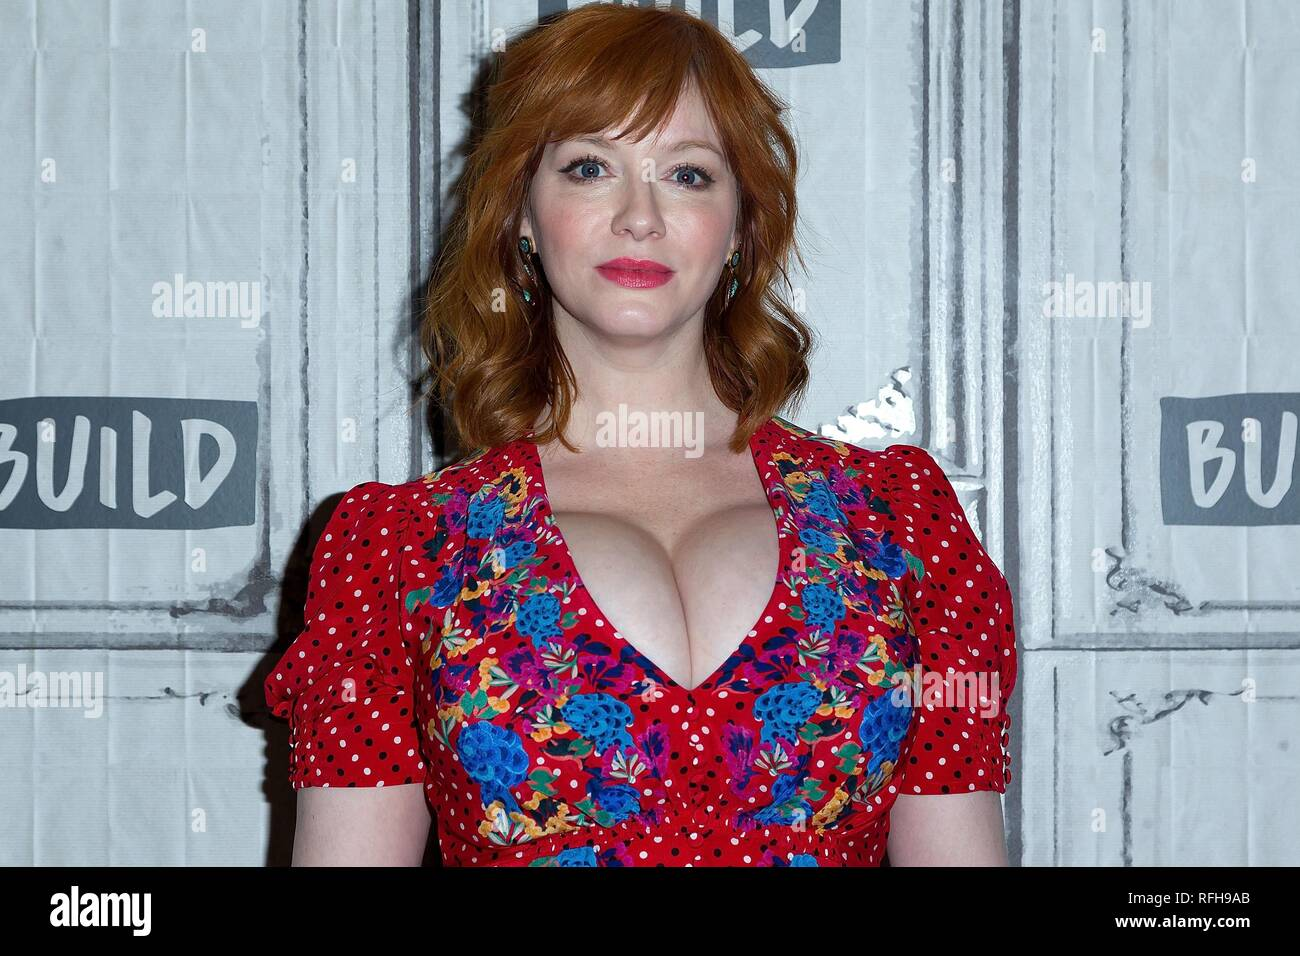 2019 Christina Hendricks nudes (69 photo), Pussy, Hot, Feet, lingerie 2019